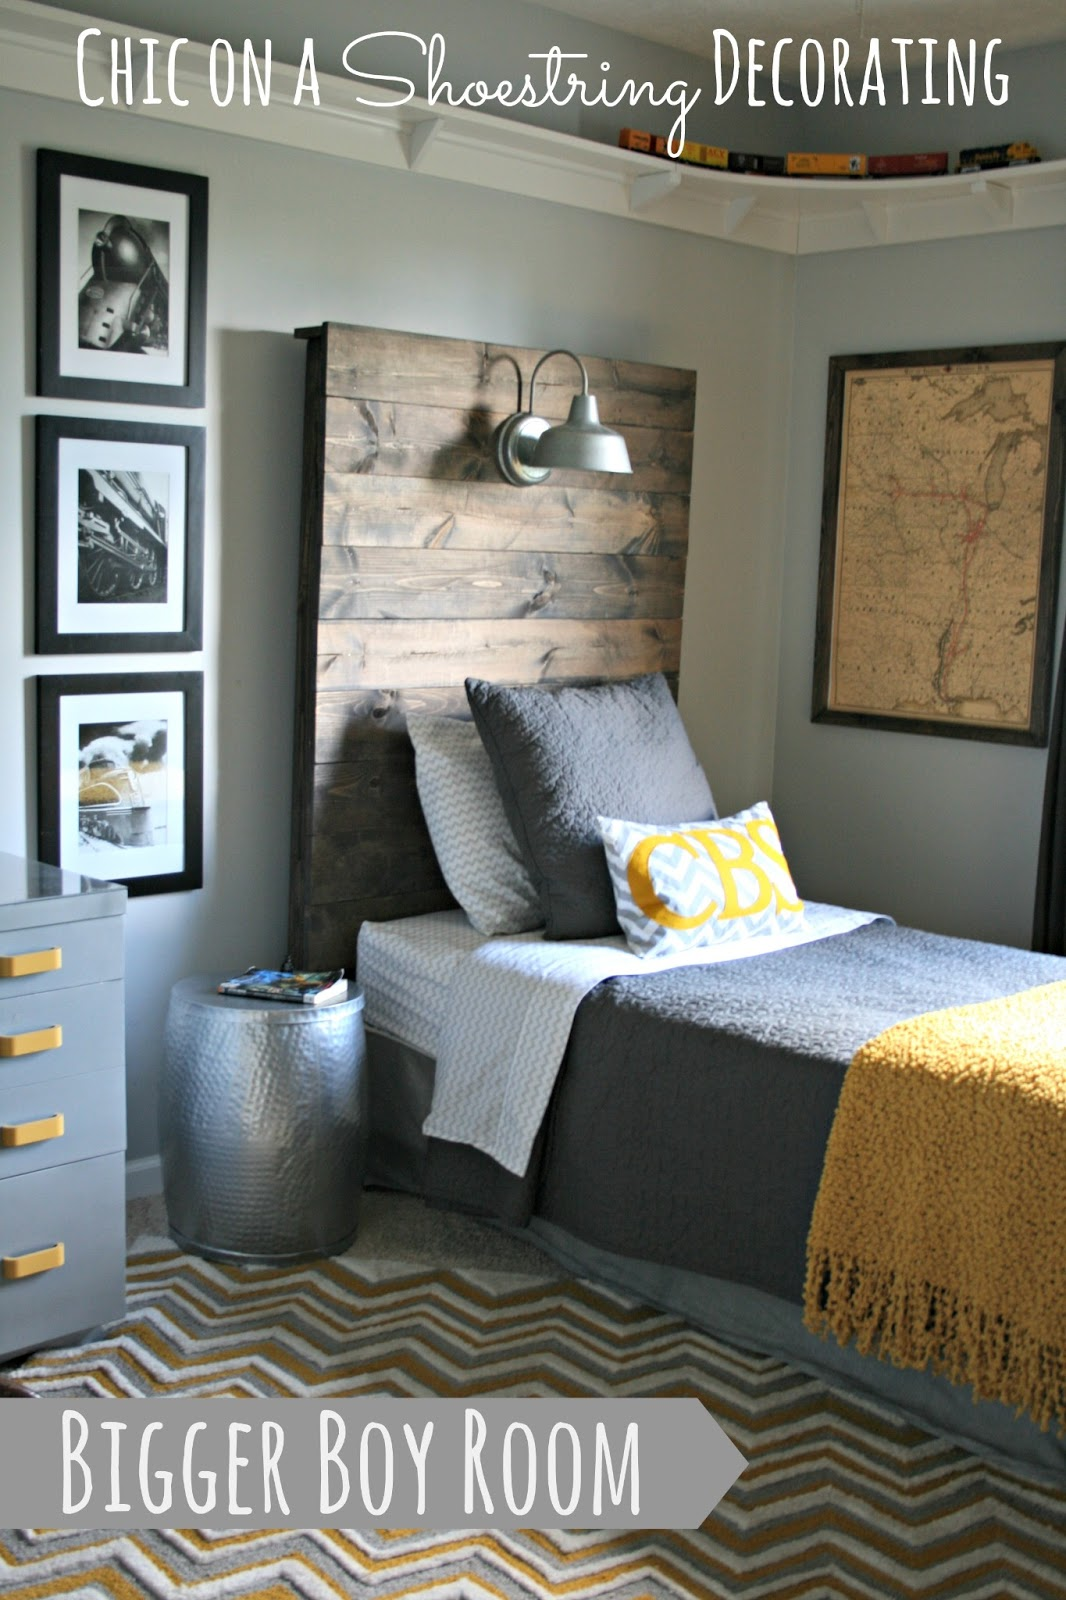 Chic on a shoestring decorating bigger boy room reveal for 12 year old boys bedroom designs